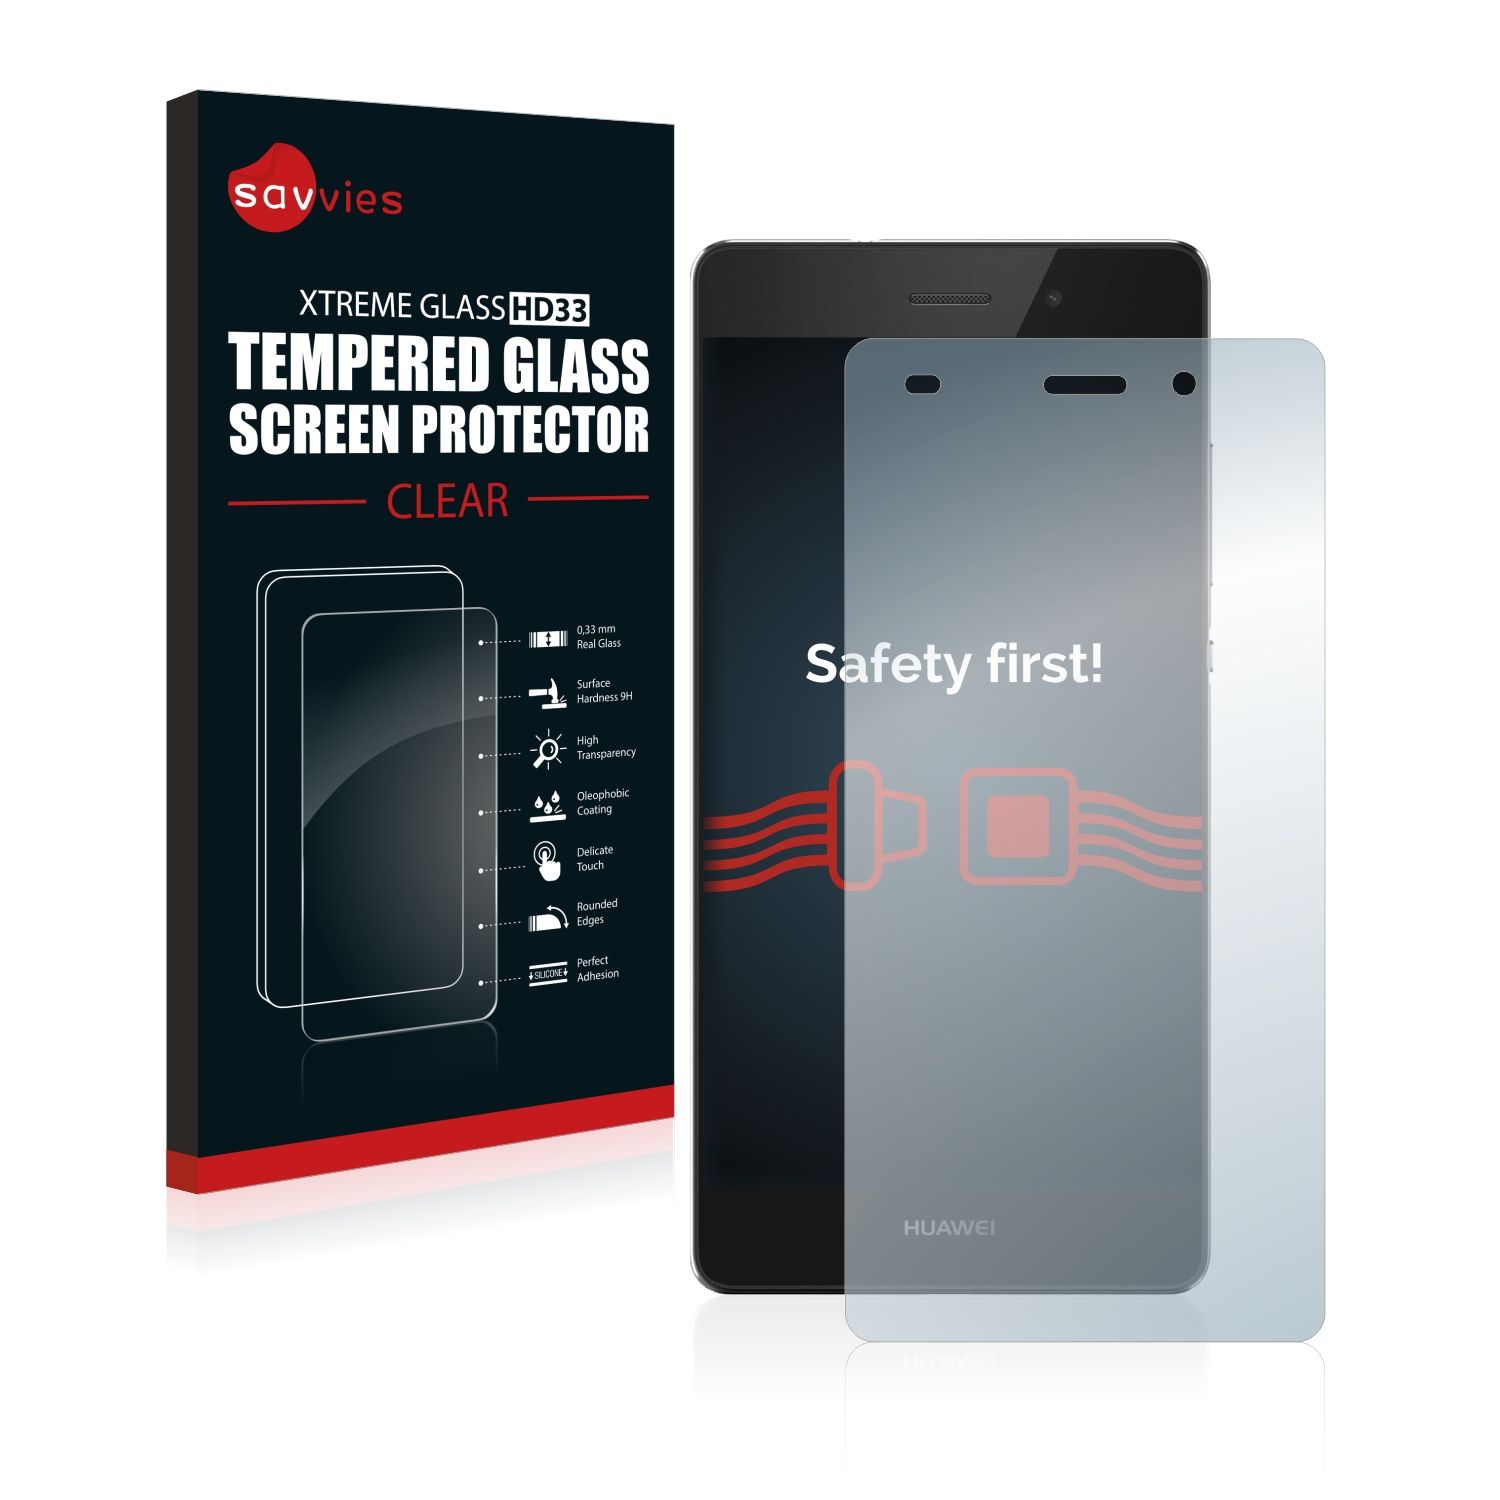 tempered glass screen protector for huawei p8 lite 2015 2016 ebay. Black Bedroom Furniture Sets. Home Design Ideas